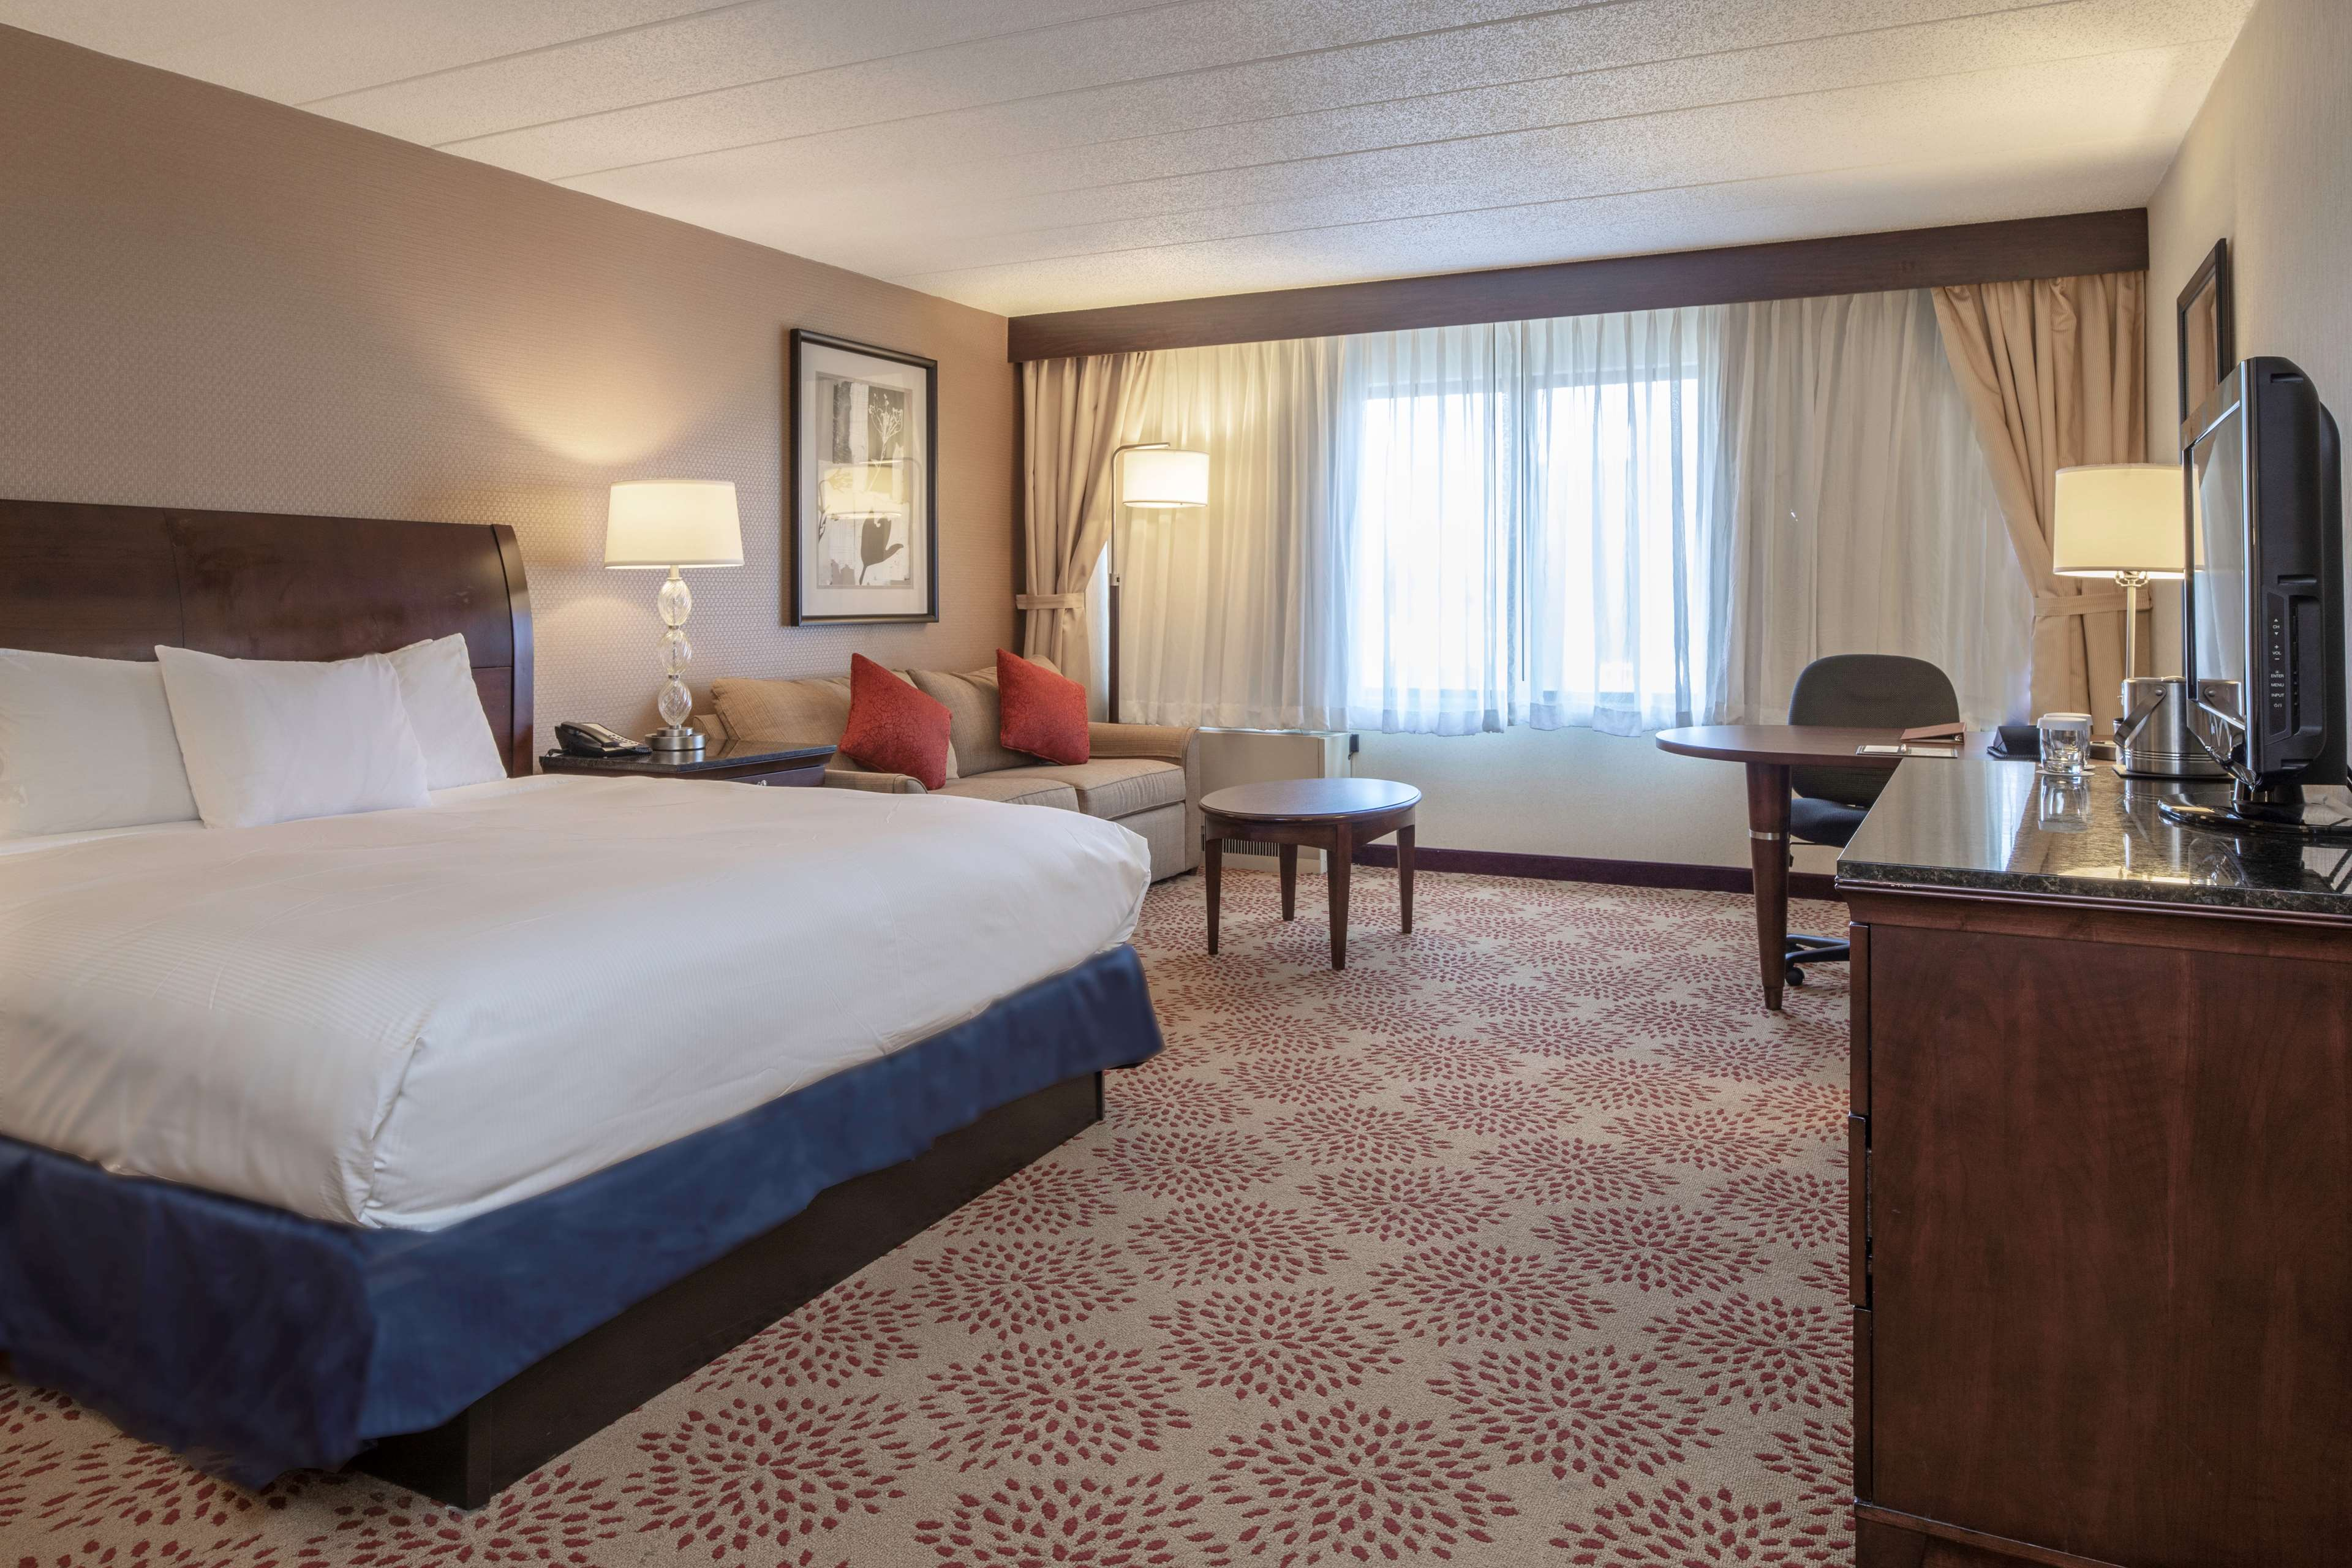 DoubleTree by Hilton Hotel Pittsburgh - Monroeville Convention Center image 12